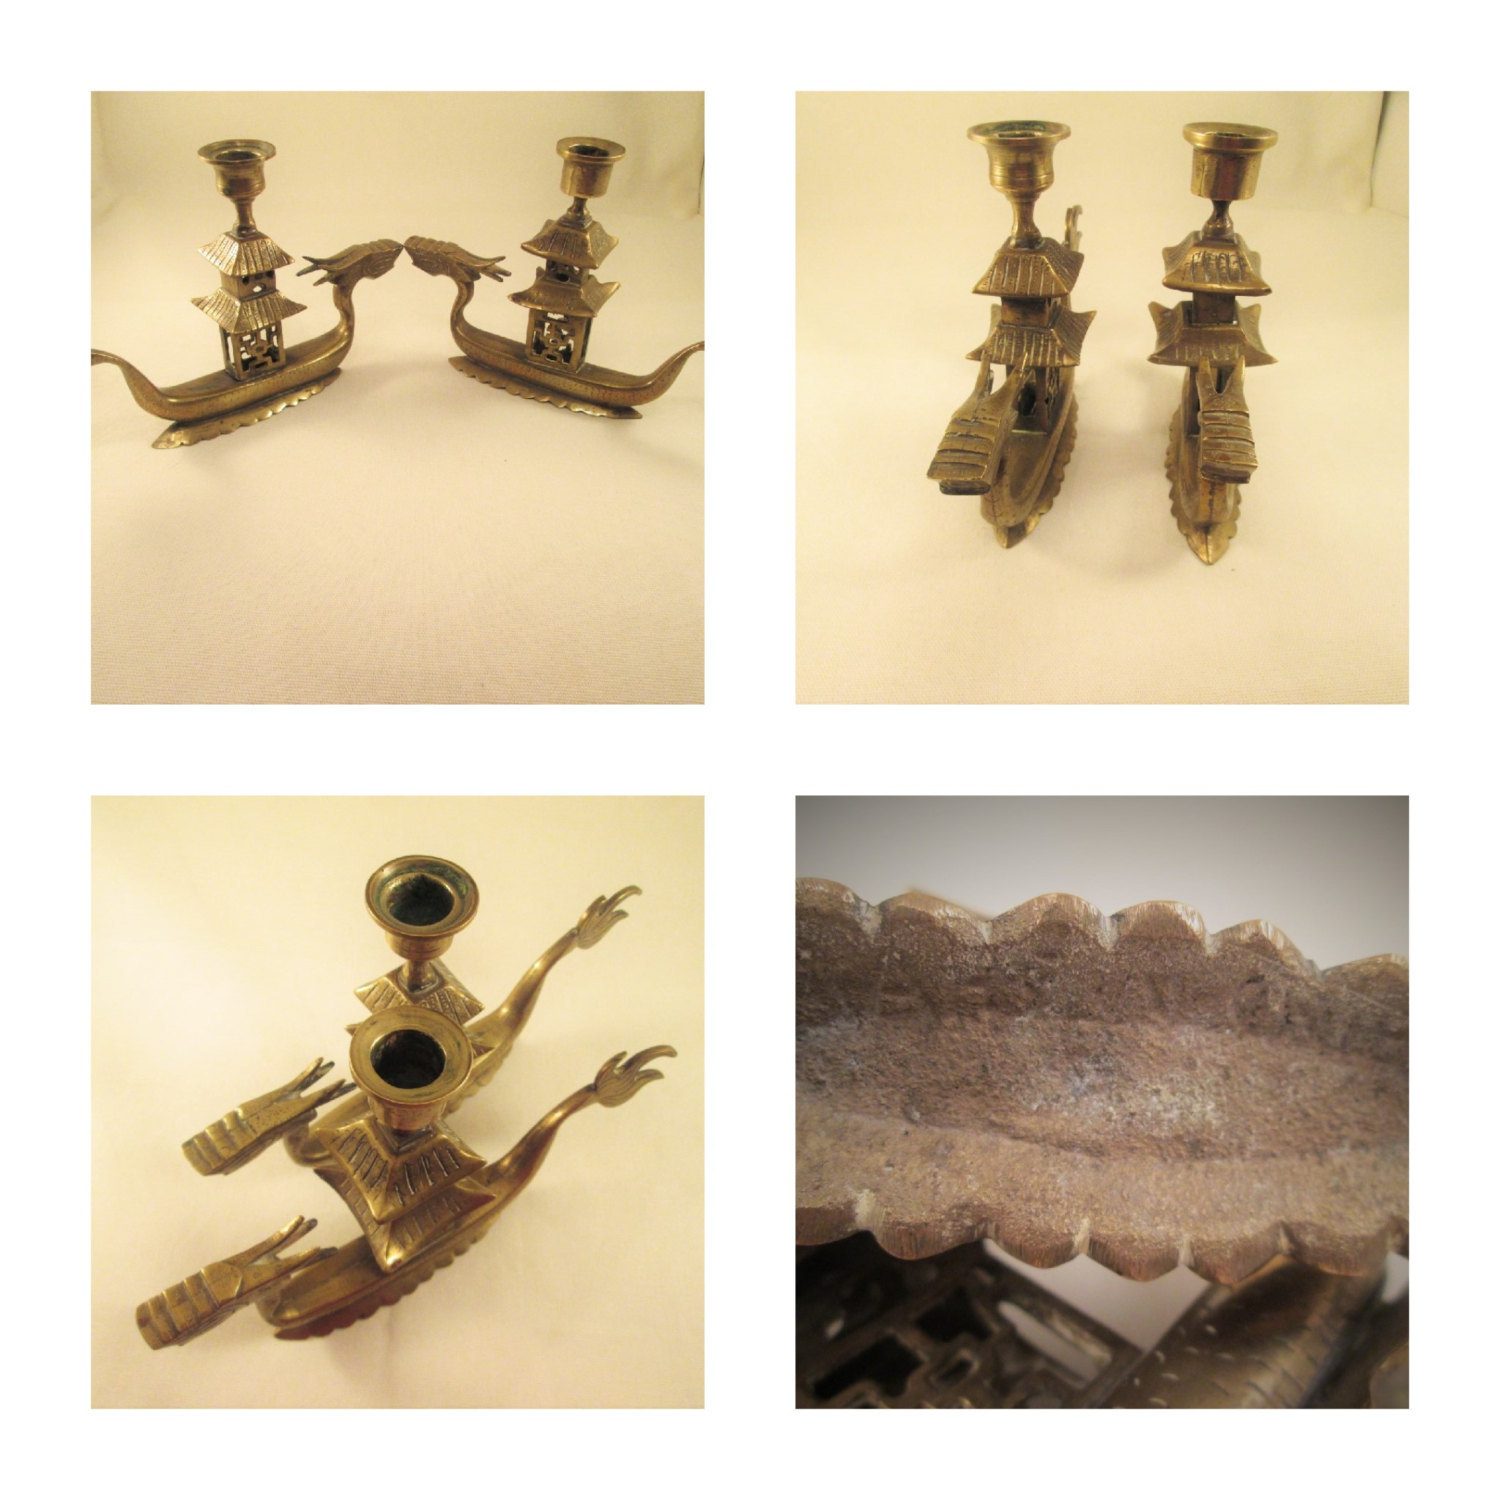 Vintage Brass Dragon Candle Holder Made In China Wwii Era Candlestick Home Decor Vintage